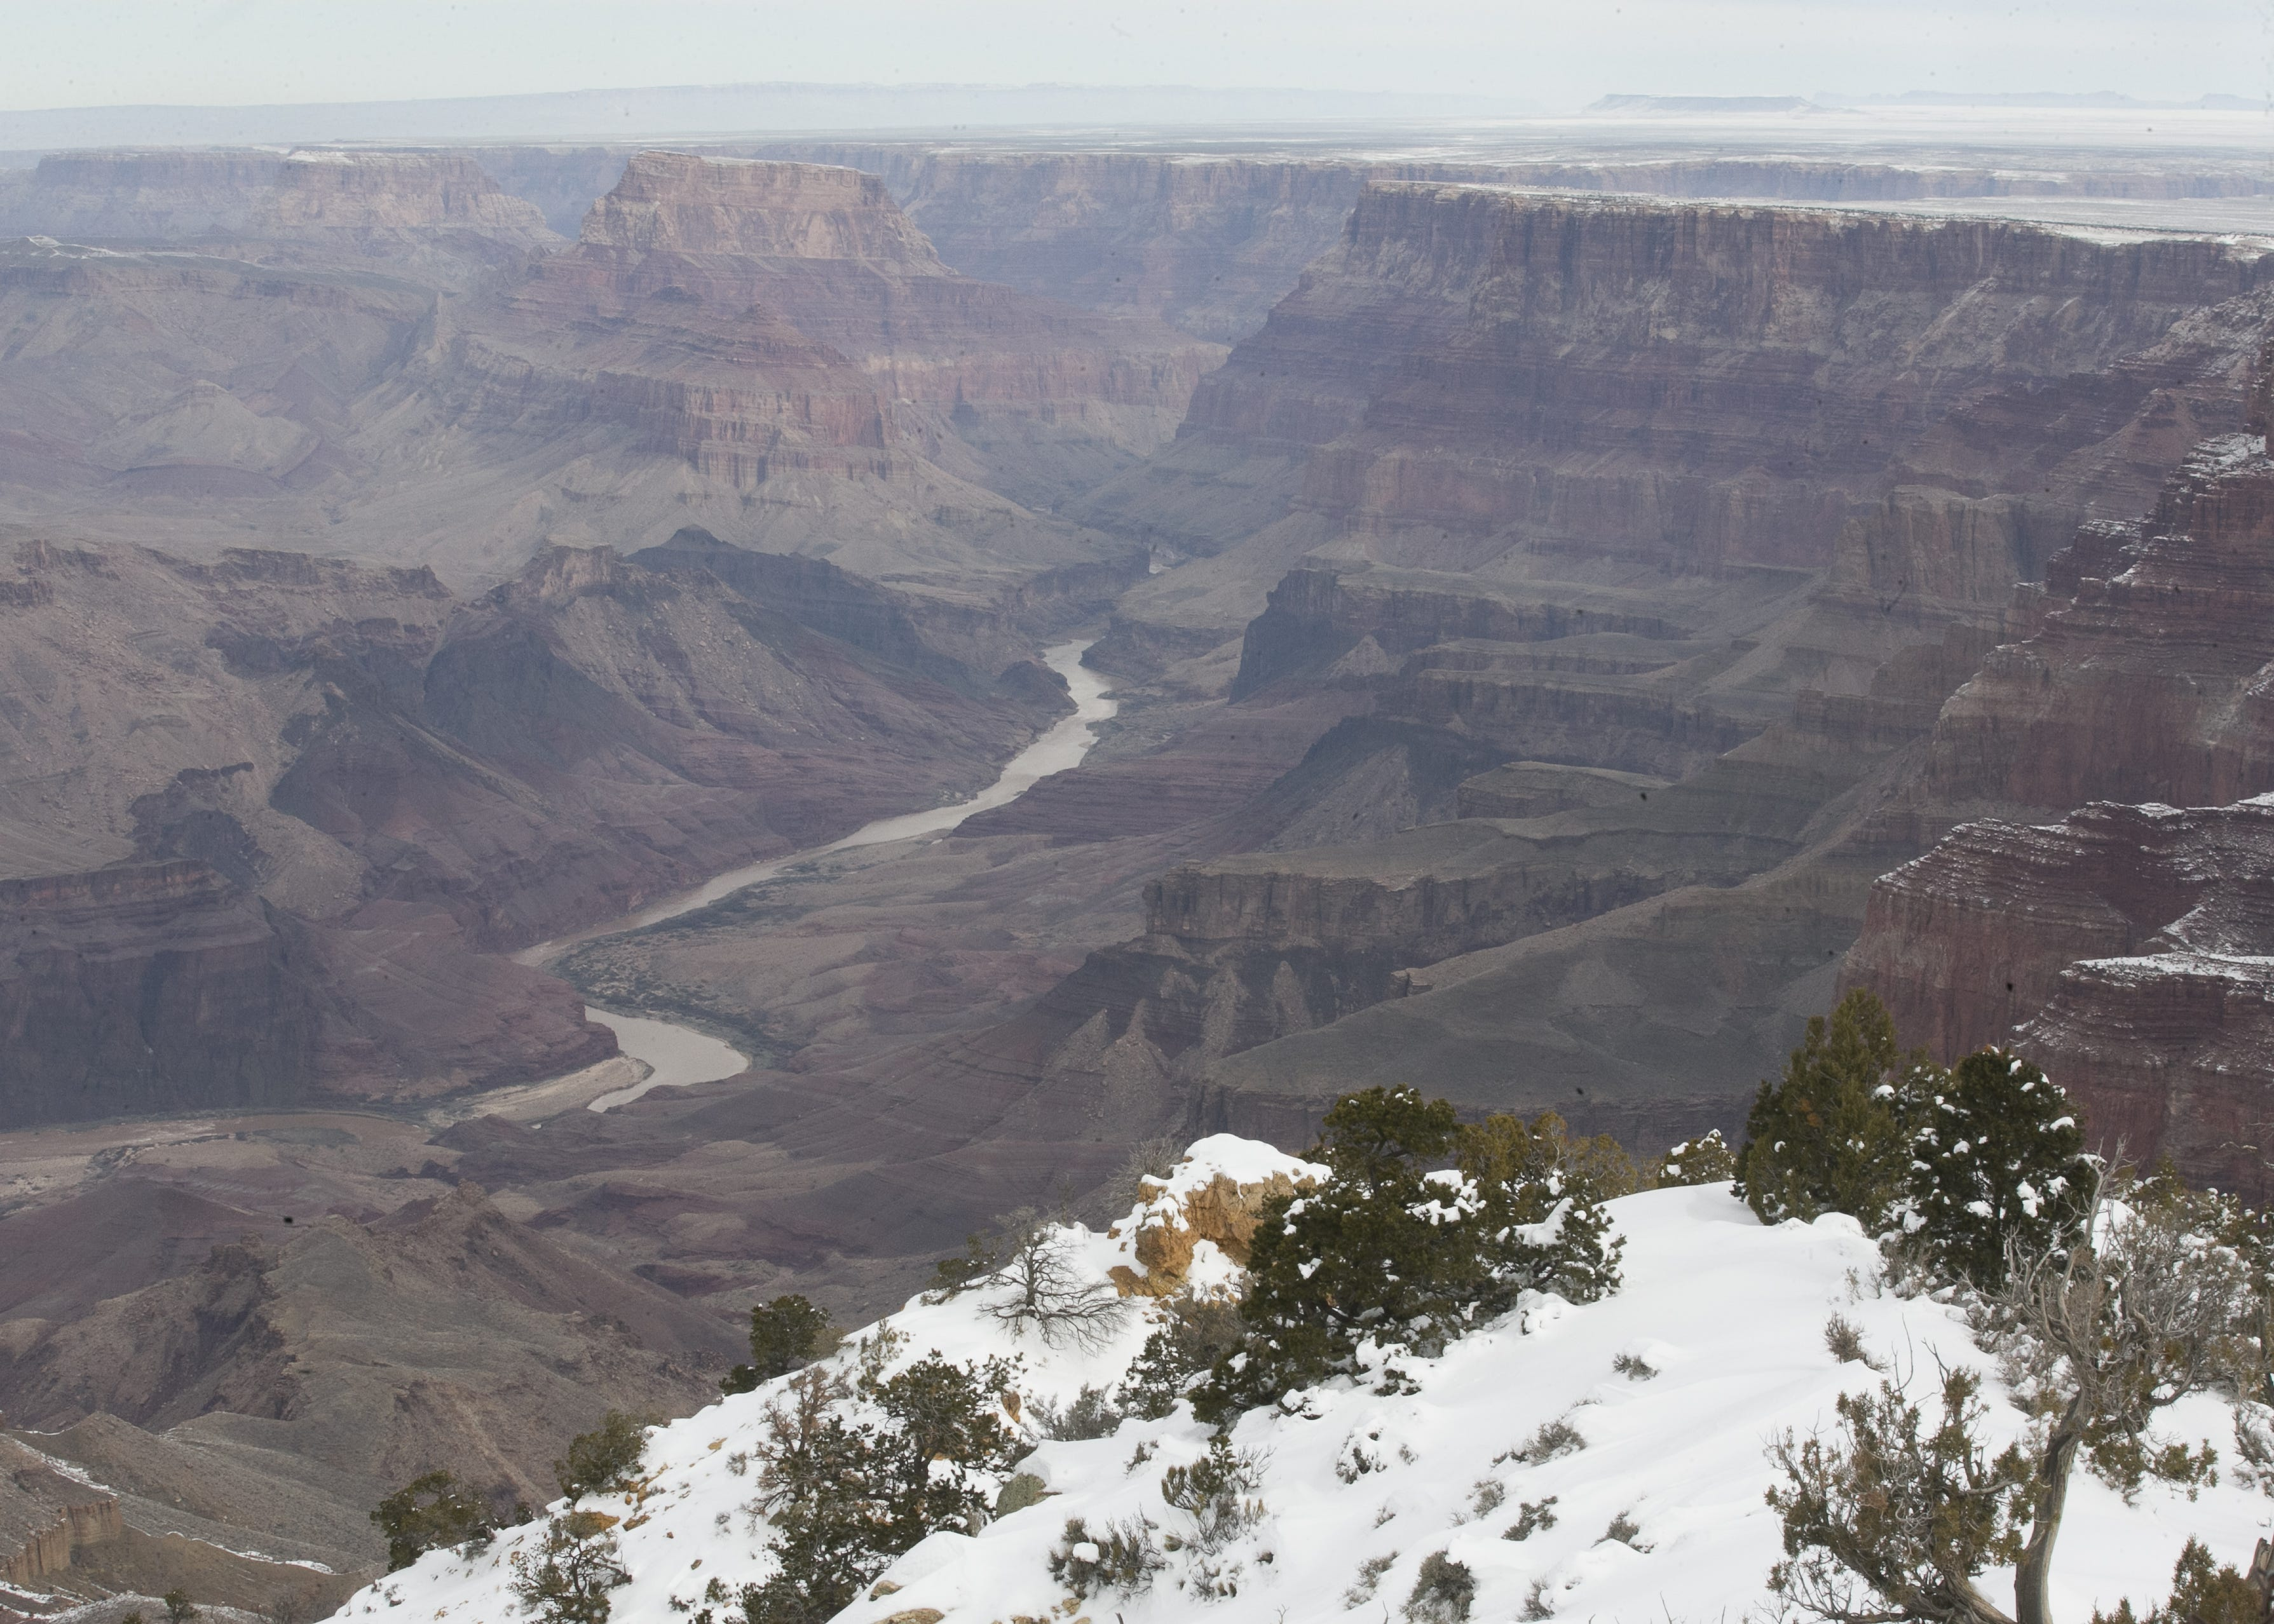 Grand Canyon at 100: Park status protects natural resources, but threats remain, inside and out